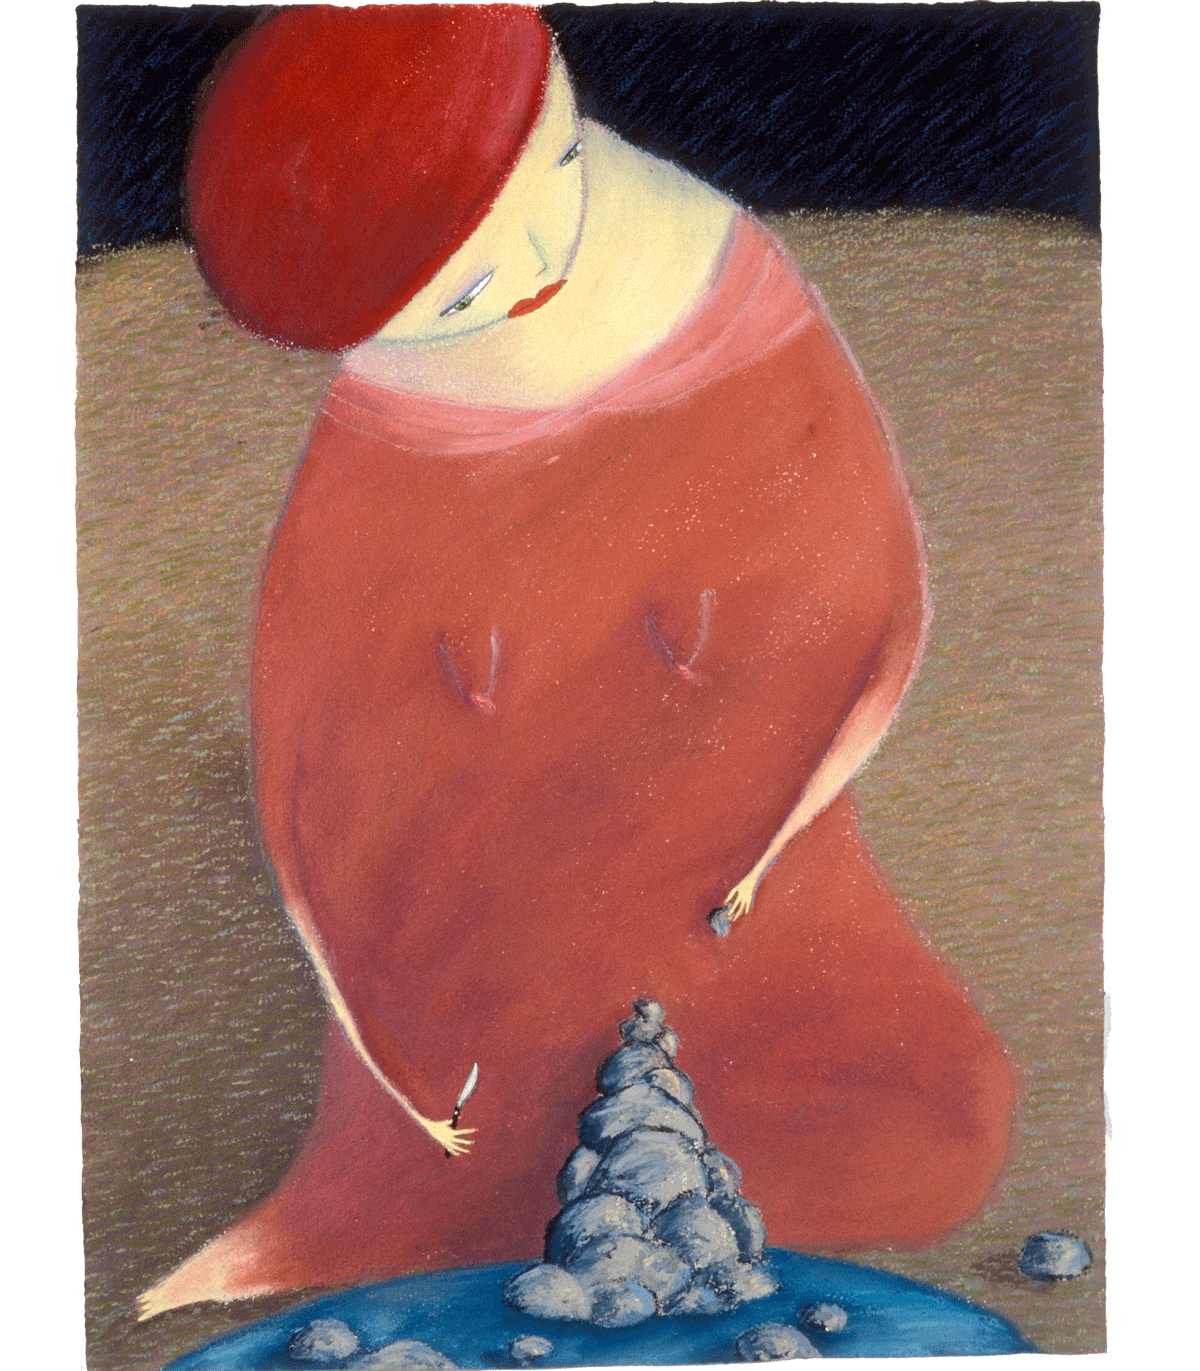 virginiahalstead.com/Paintings/Content-in-the-vast-open-spaces-of-solitude.png